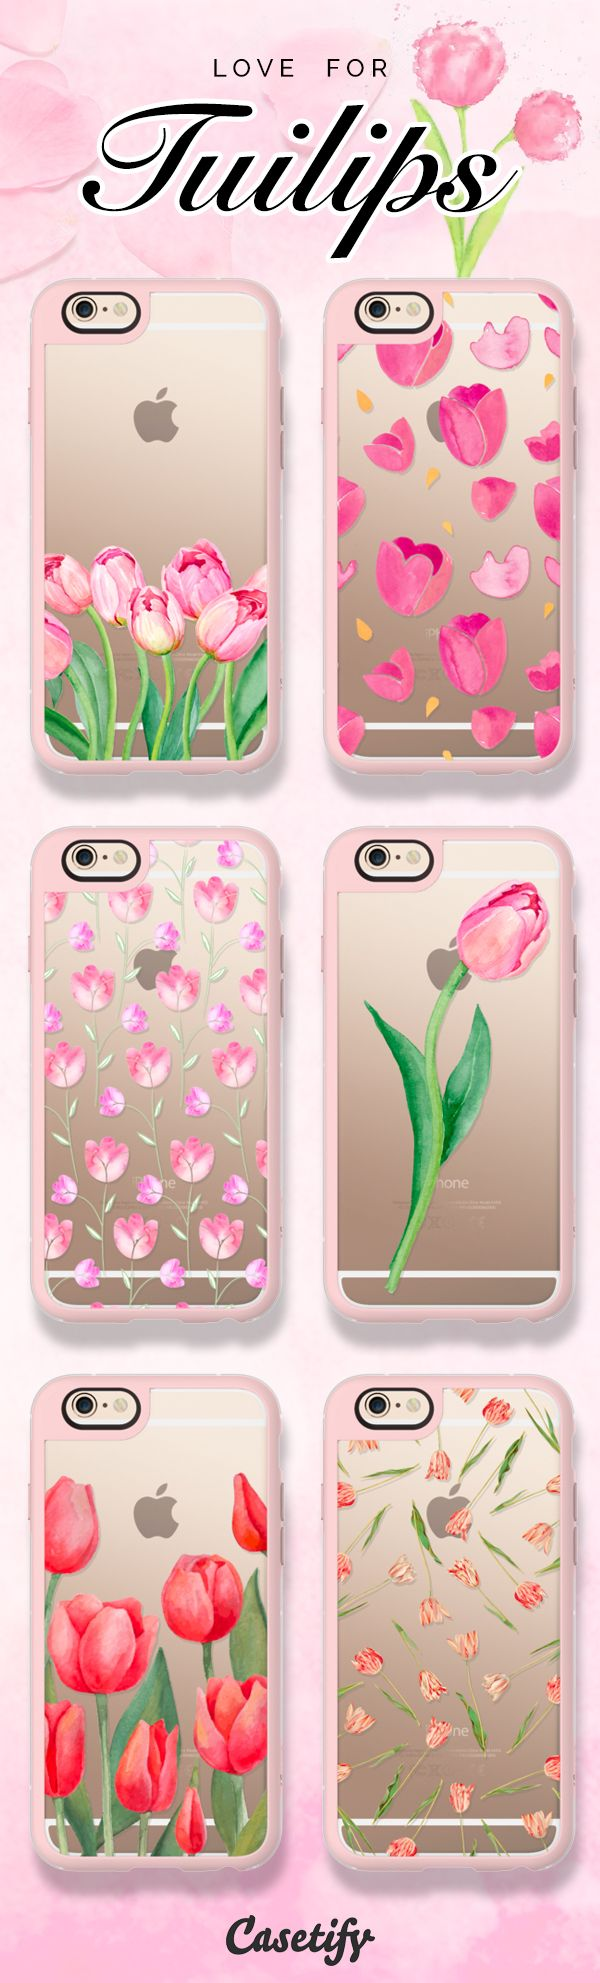 Tiptoe through the tulips. Tap the link to shop these elegant tulip cases: https://www.casetify.com/artworks/hNs68Hjo4k | @casetify